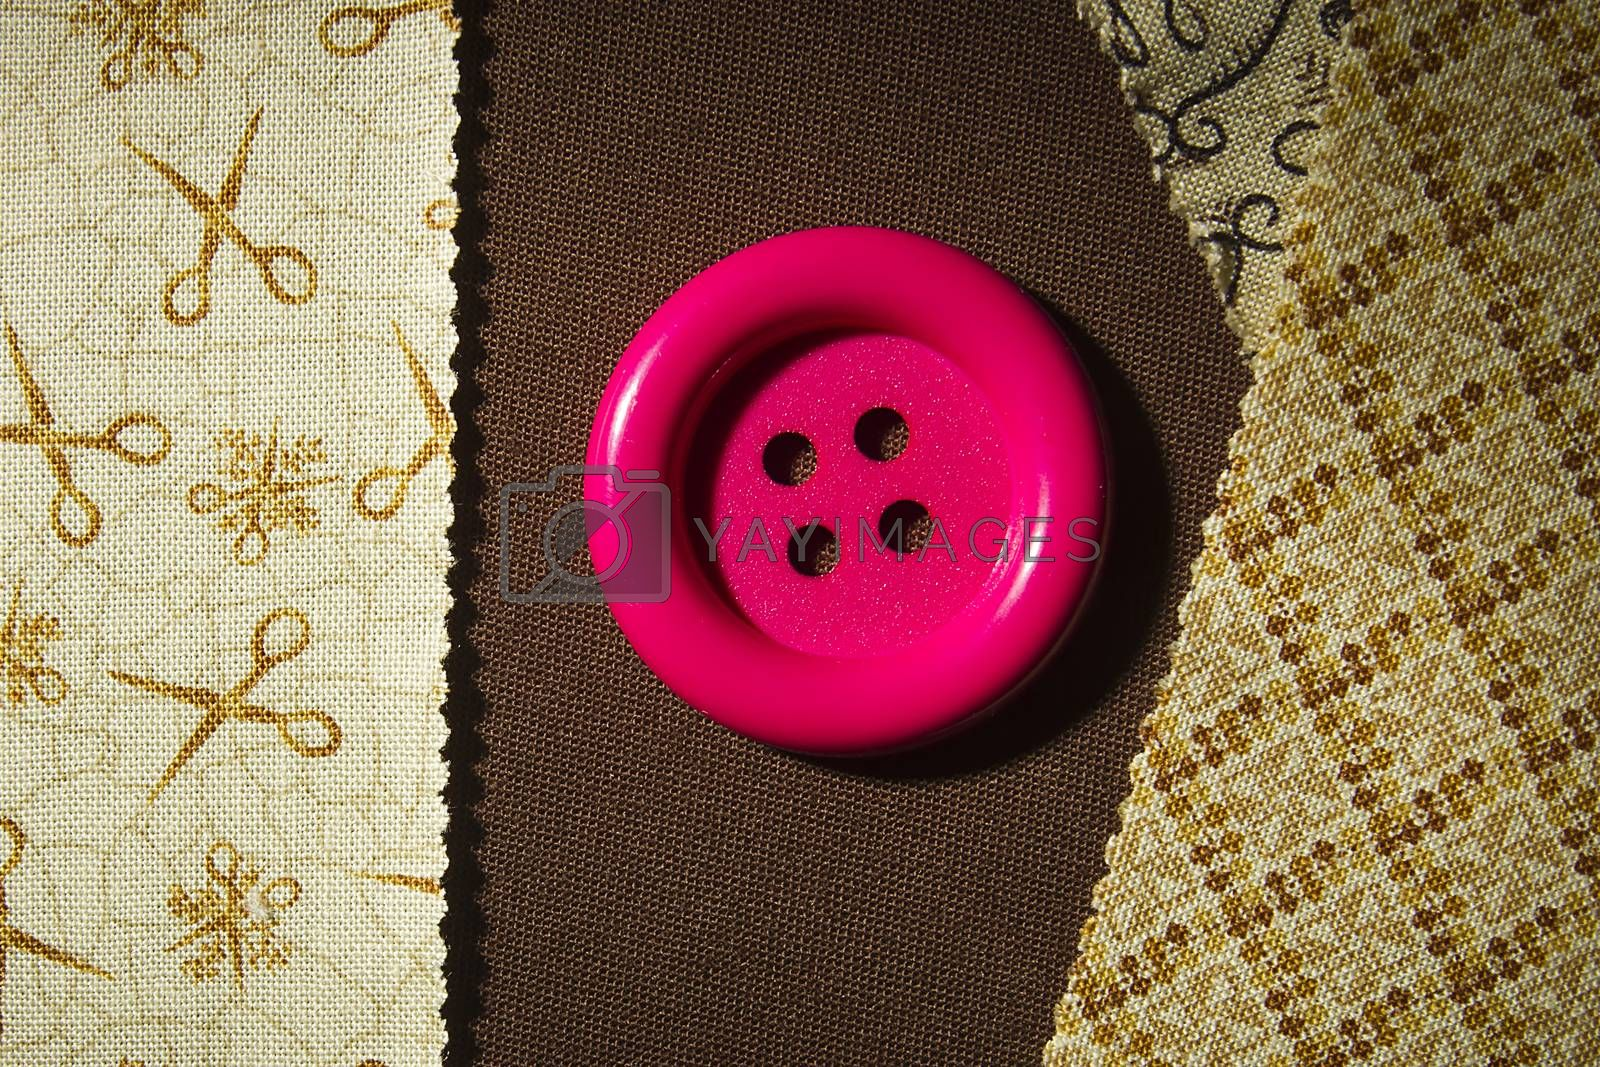 Button and fragments of fabric on a wooden table